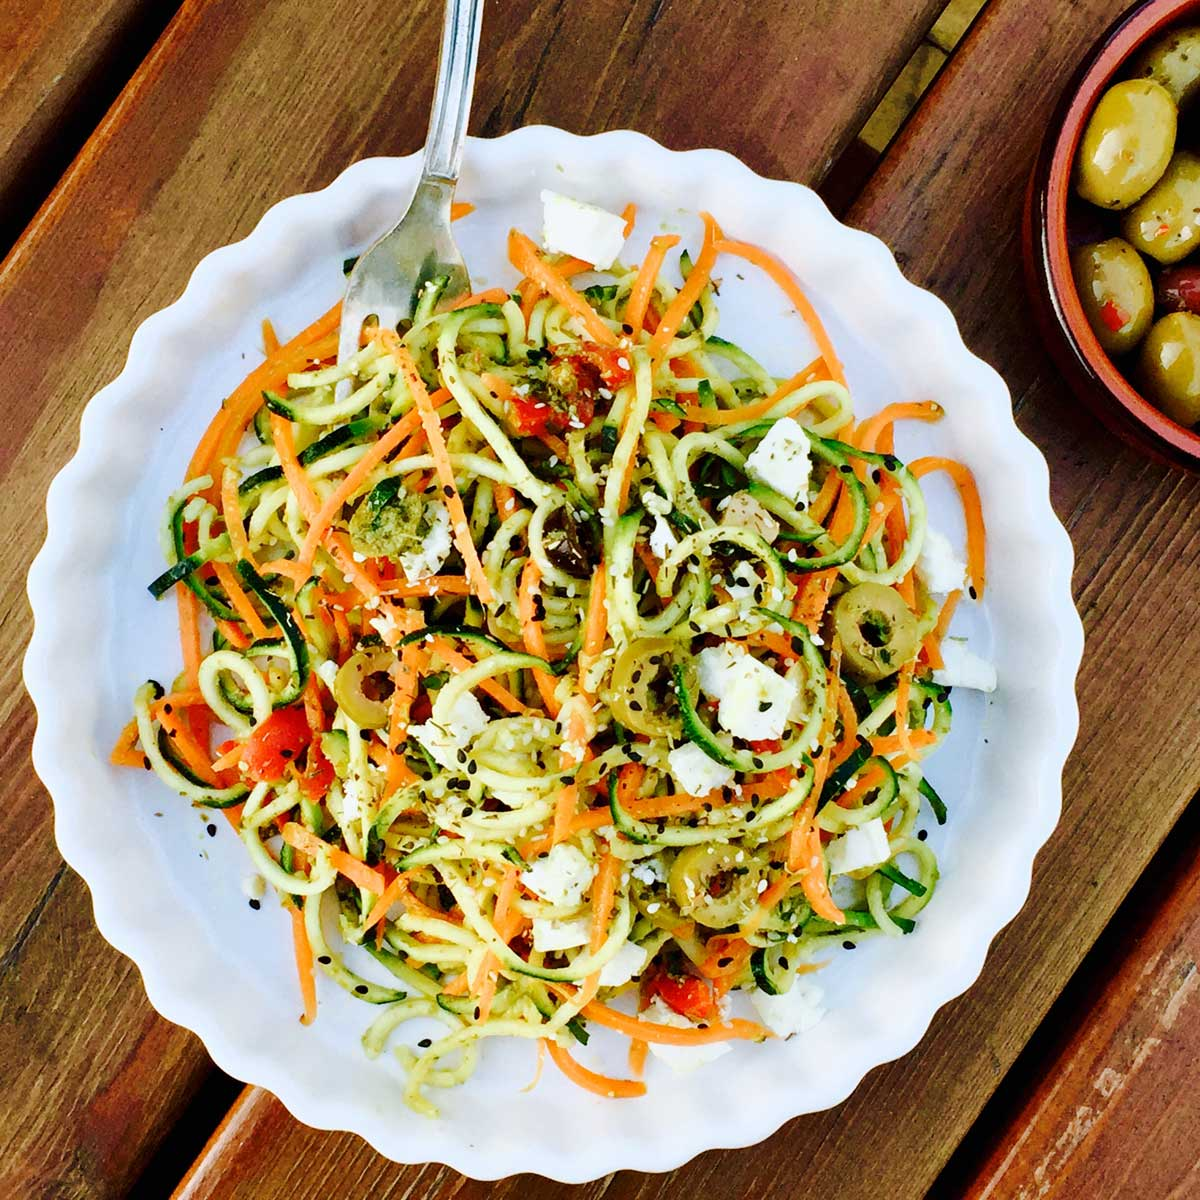 Vegetarian pesto courgette and carrot noodles with feta cheese and olives